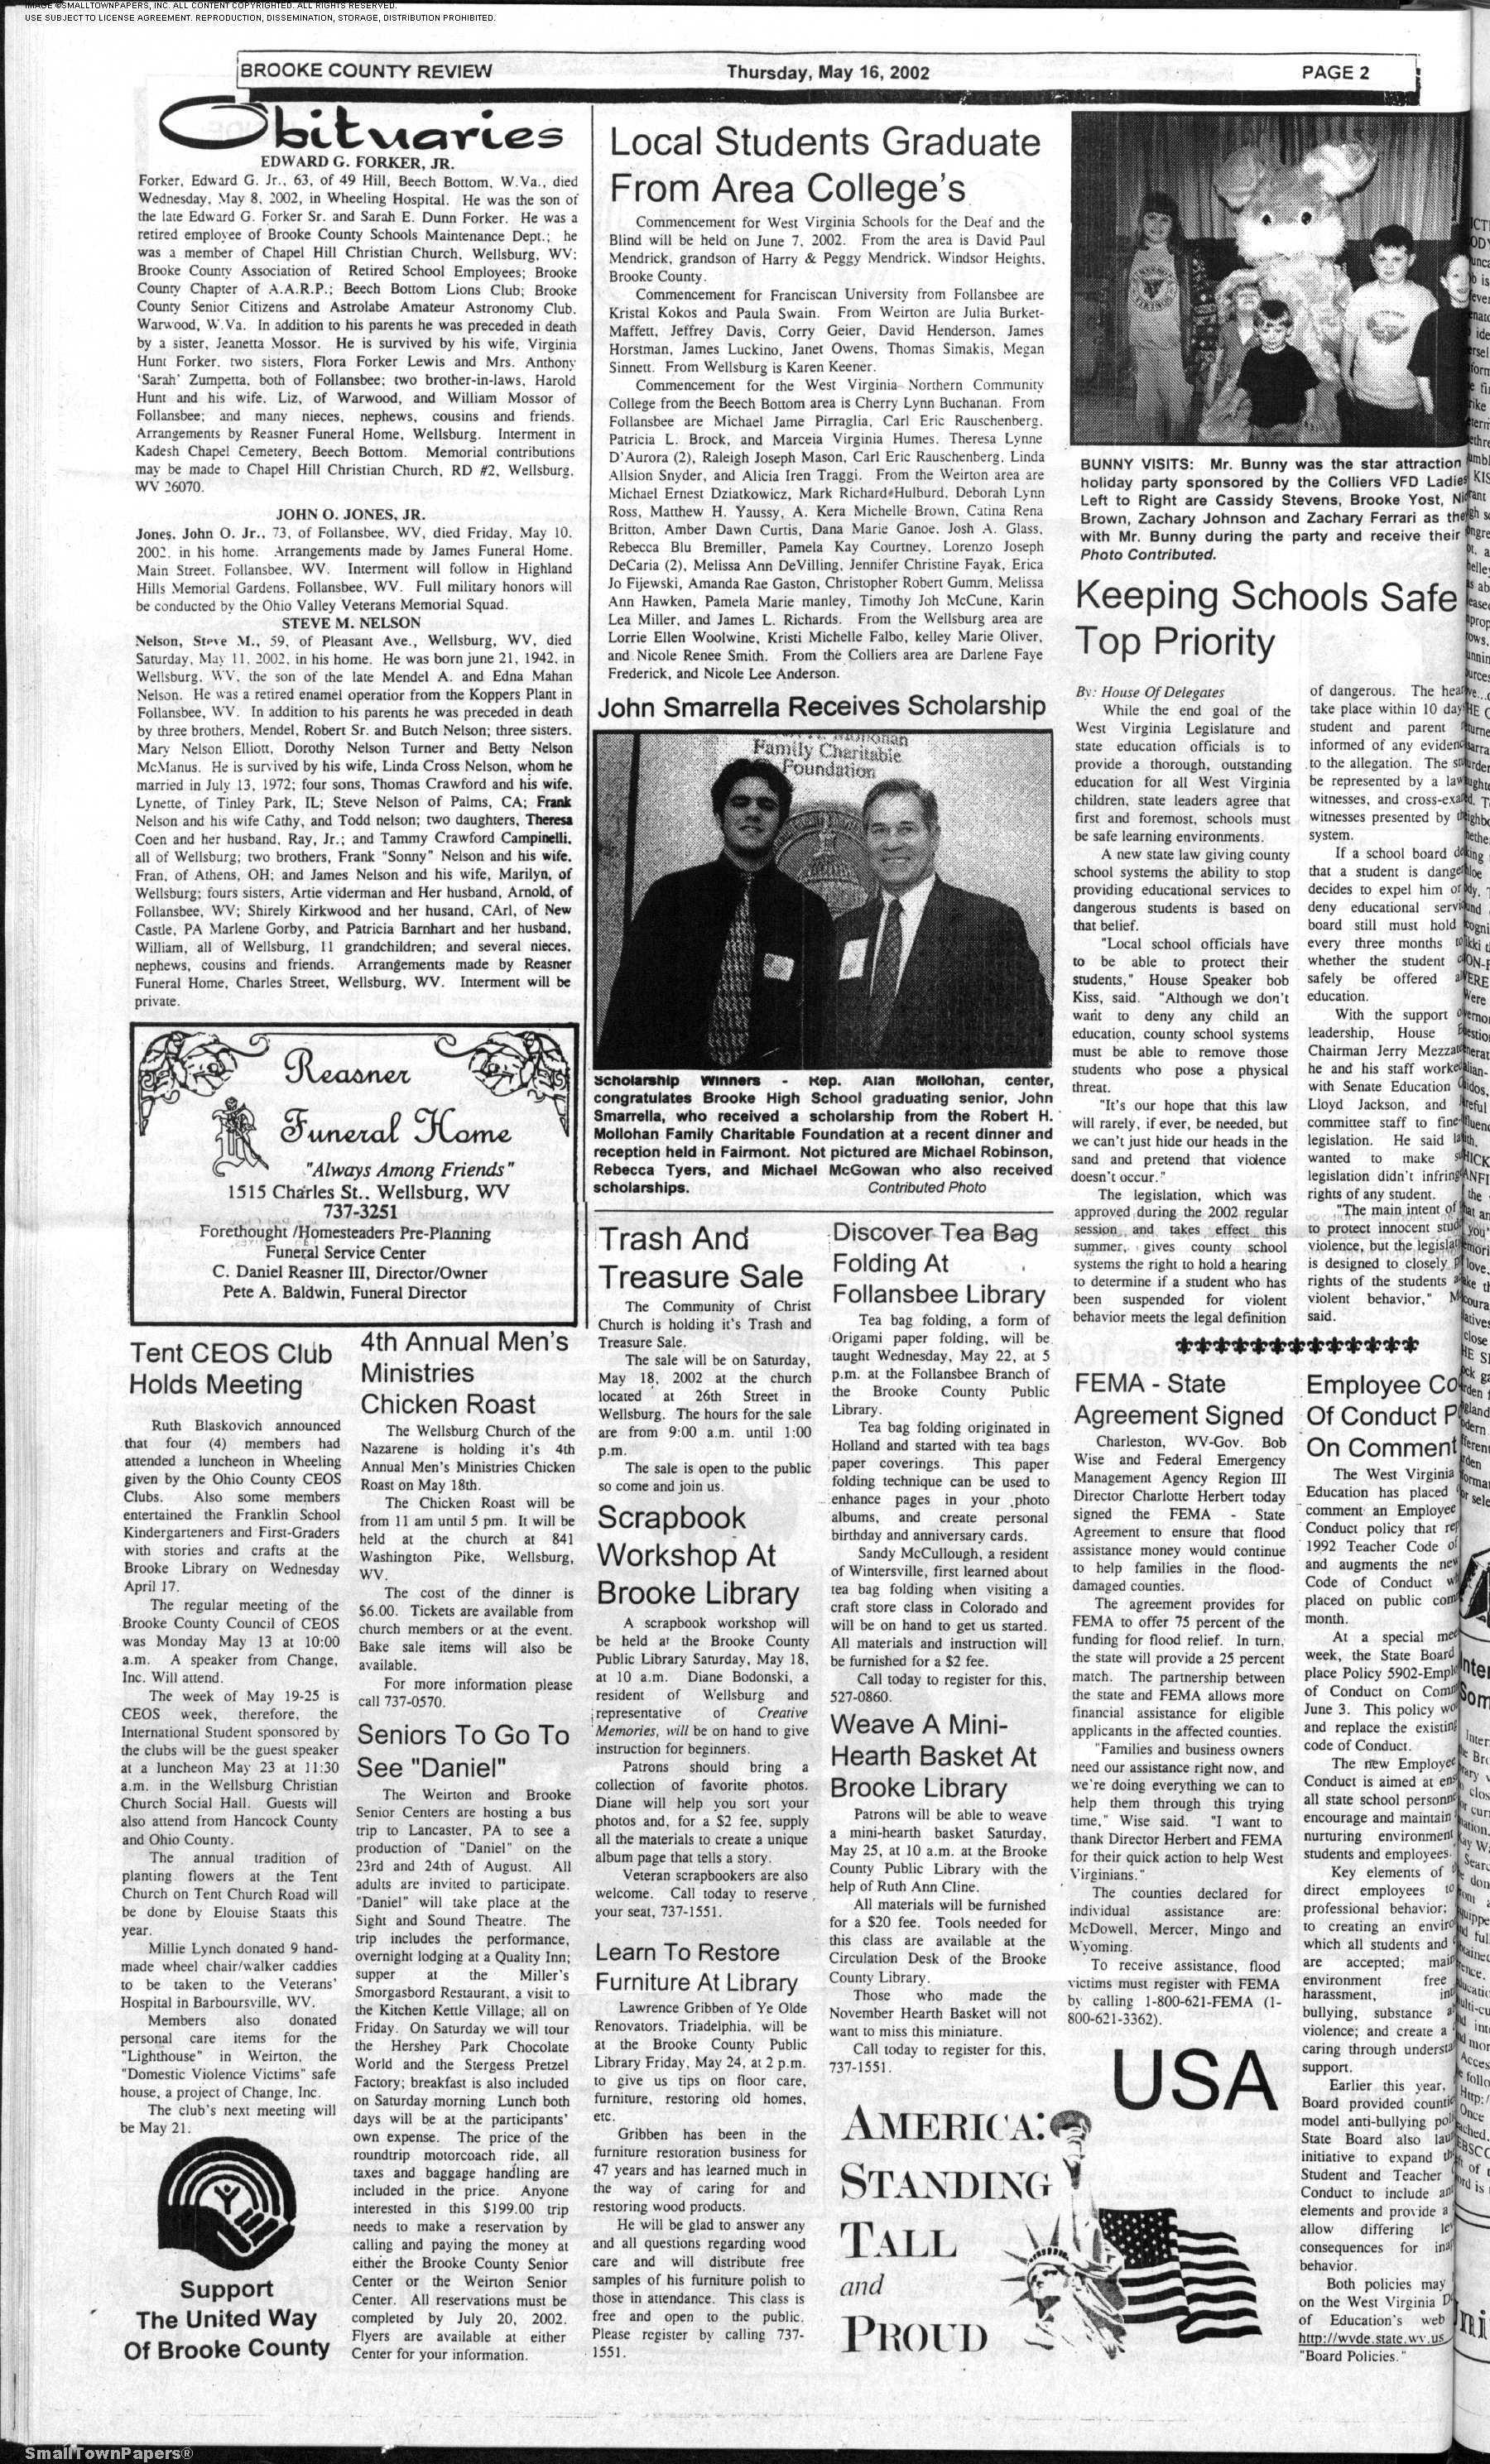 The Brooke County Review May 16 2002 Page 2